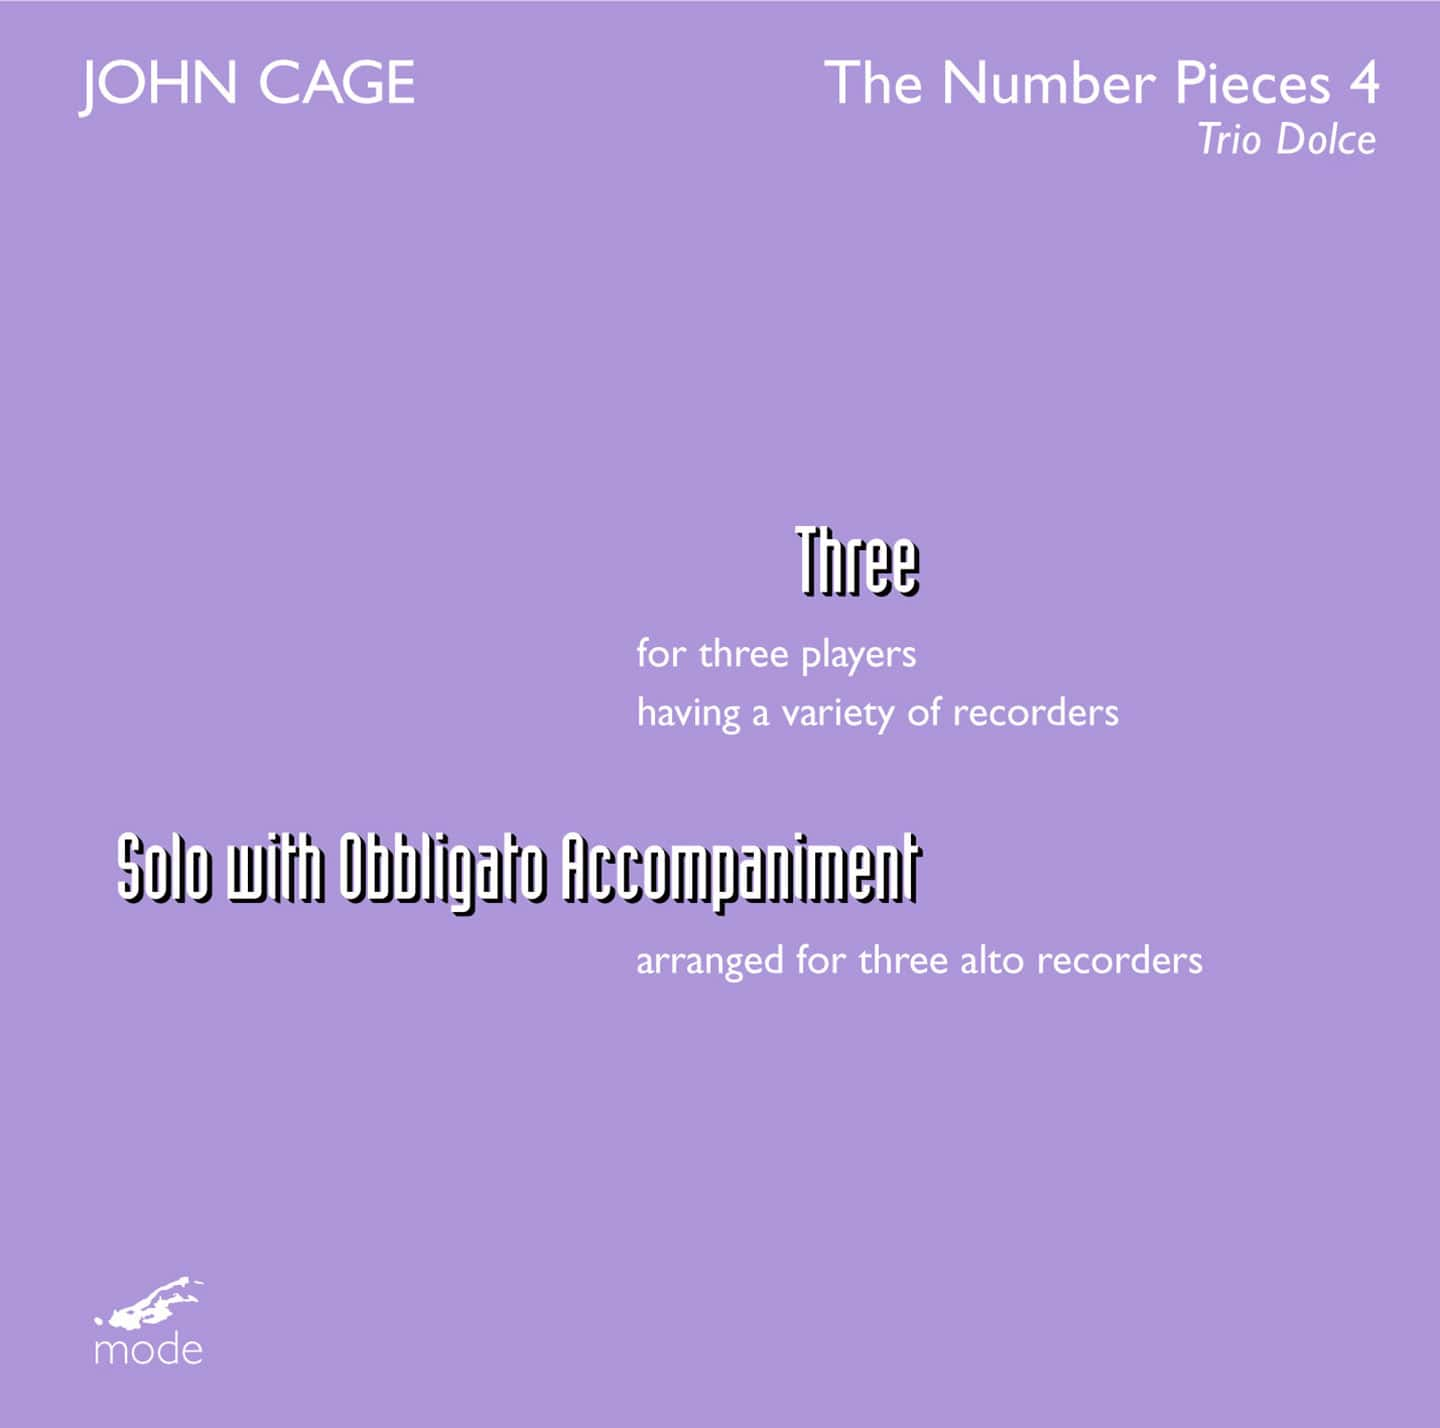 John Cage Edition 38: The Number Pieces 4